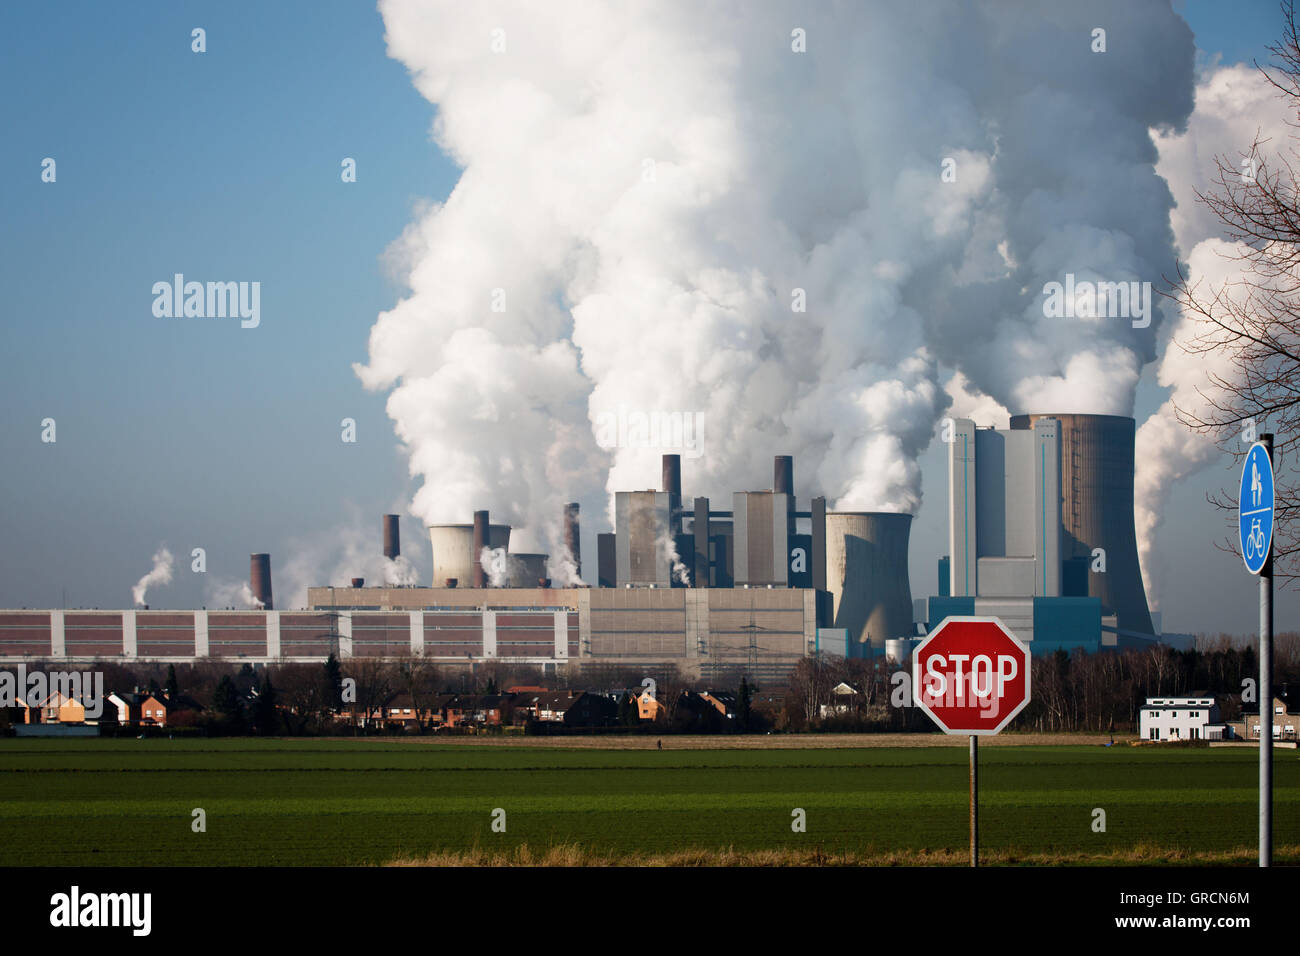 Outdated Coal Plant Niederaußem With Stop Sign - Stock Image